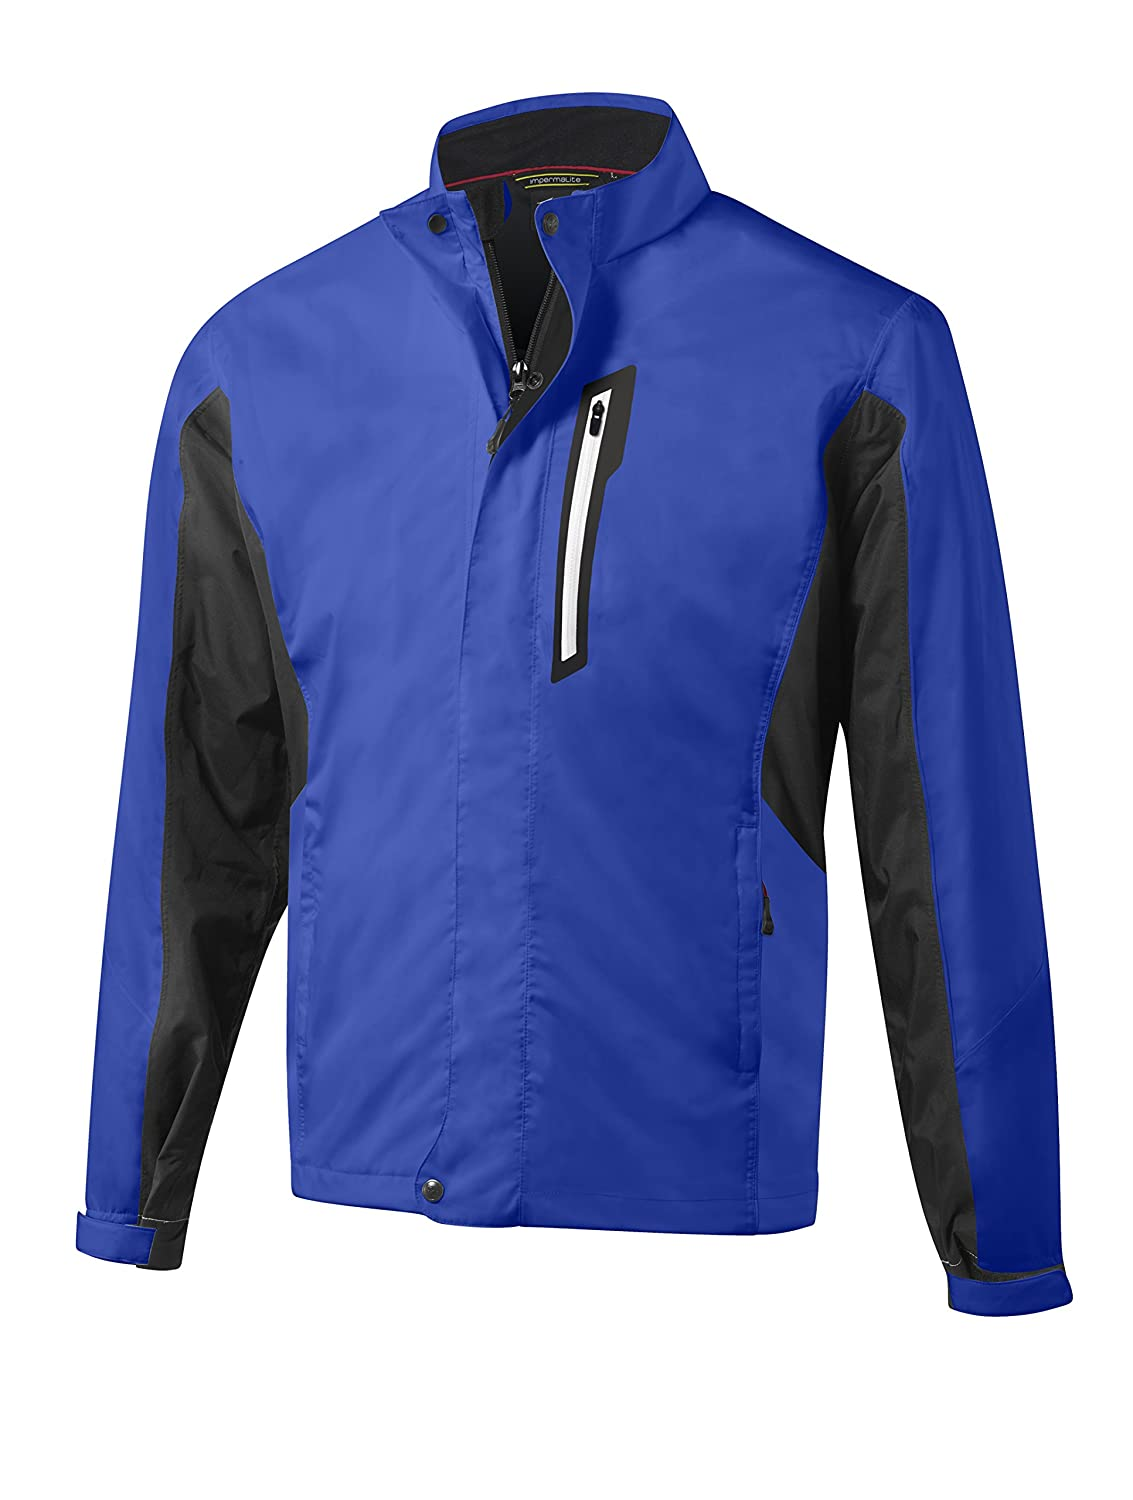 Mizuno Men', Hyper s Rain Jacket